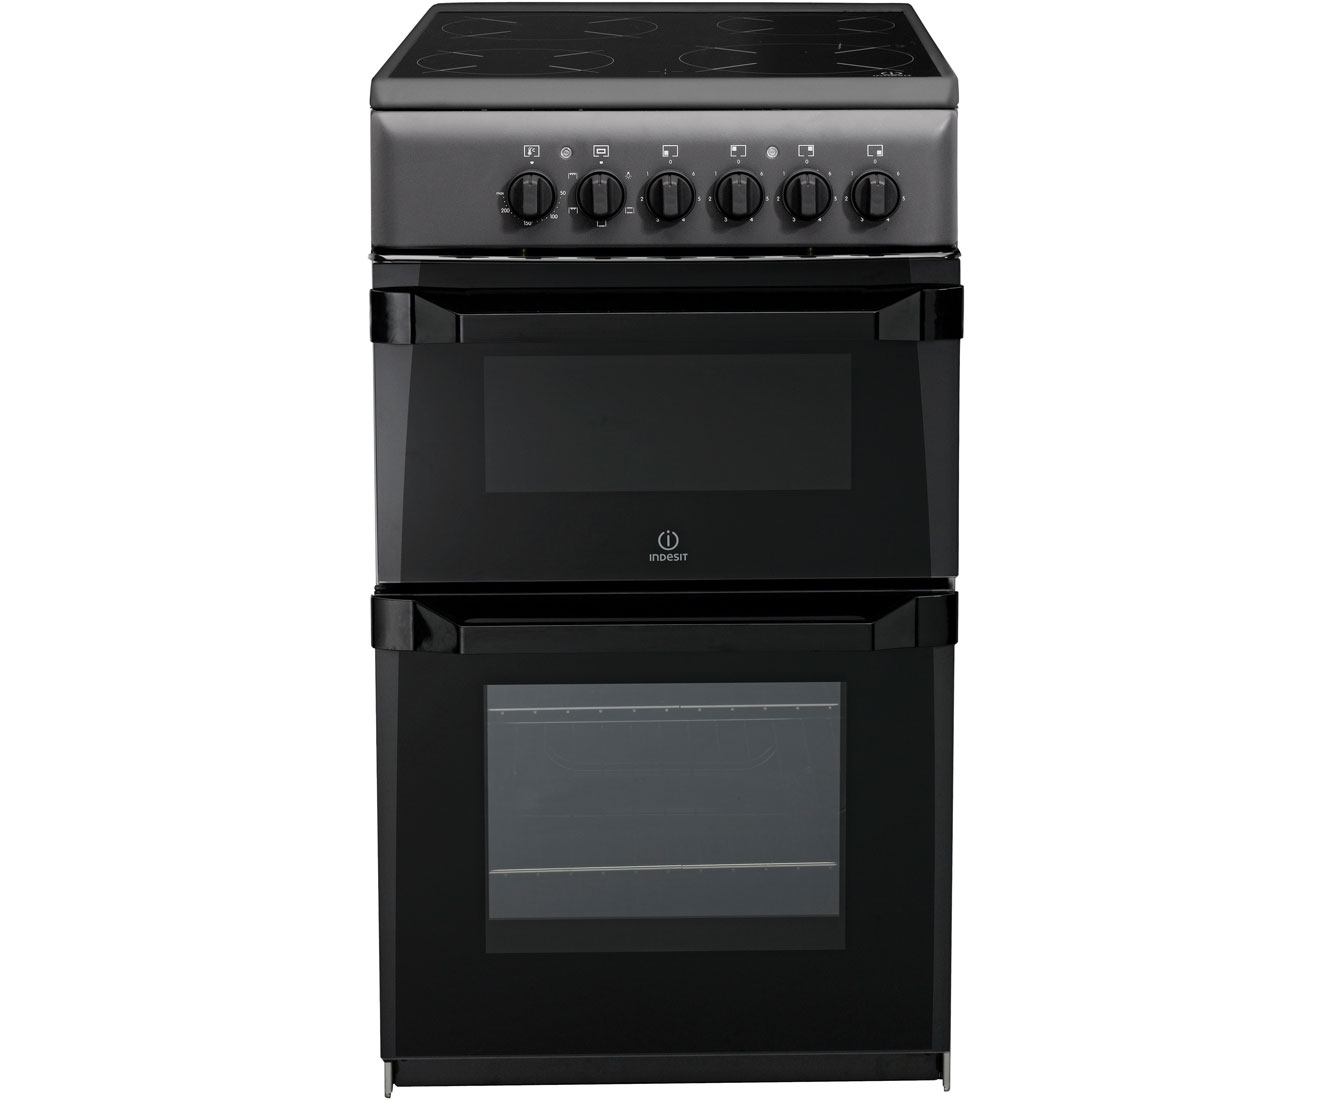 Indesit Advance IT50CAS Electric Cooker with Ceramic Hob - Anthracite